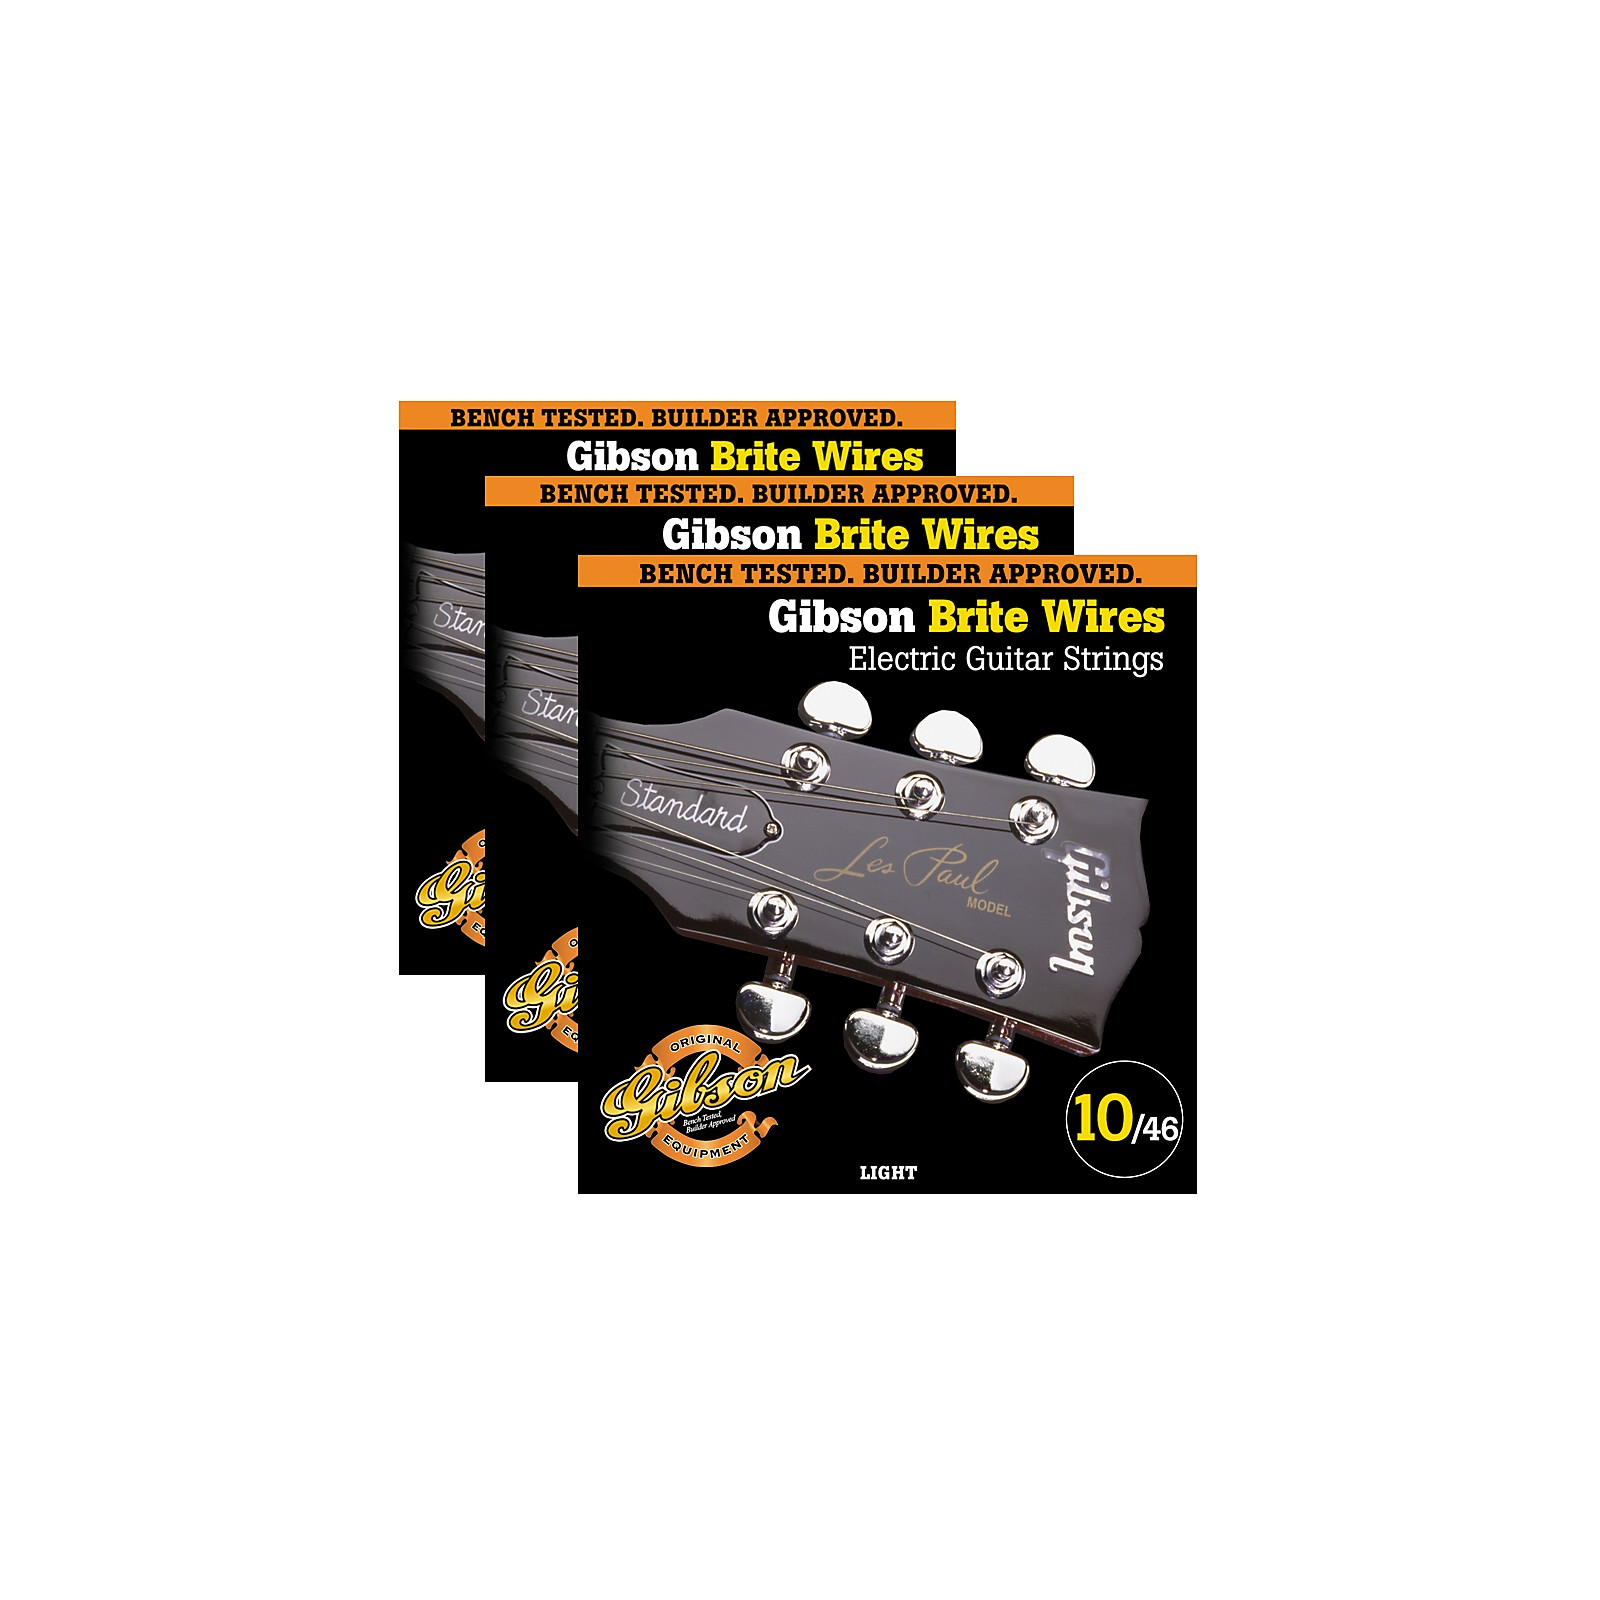 Gibson Brite Wires Light Guitar Strings